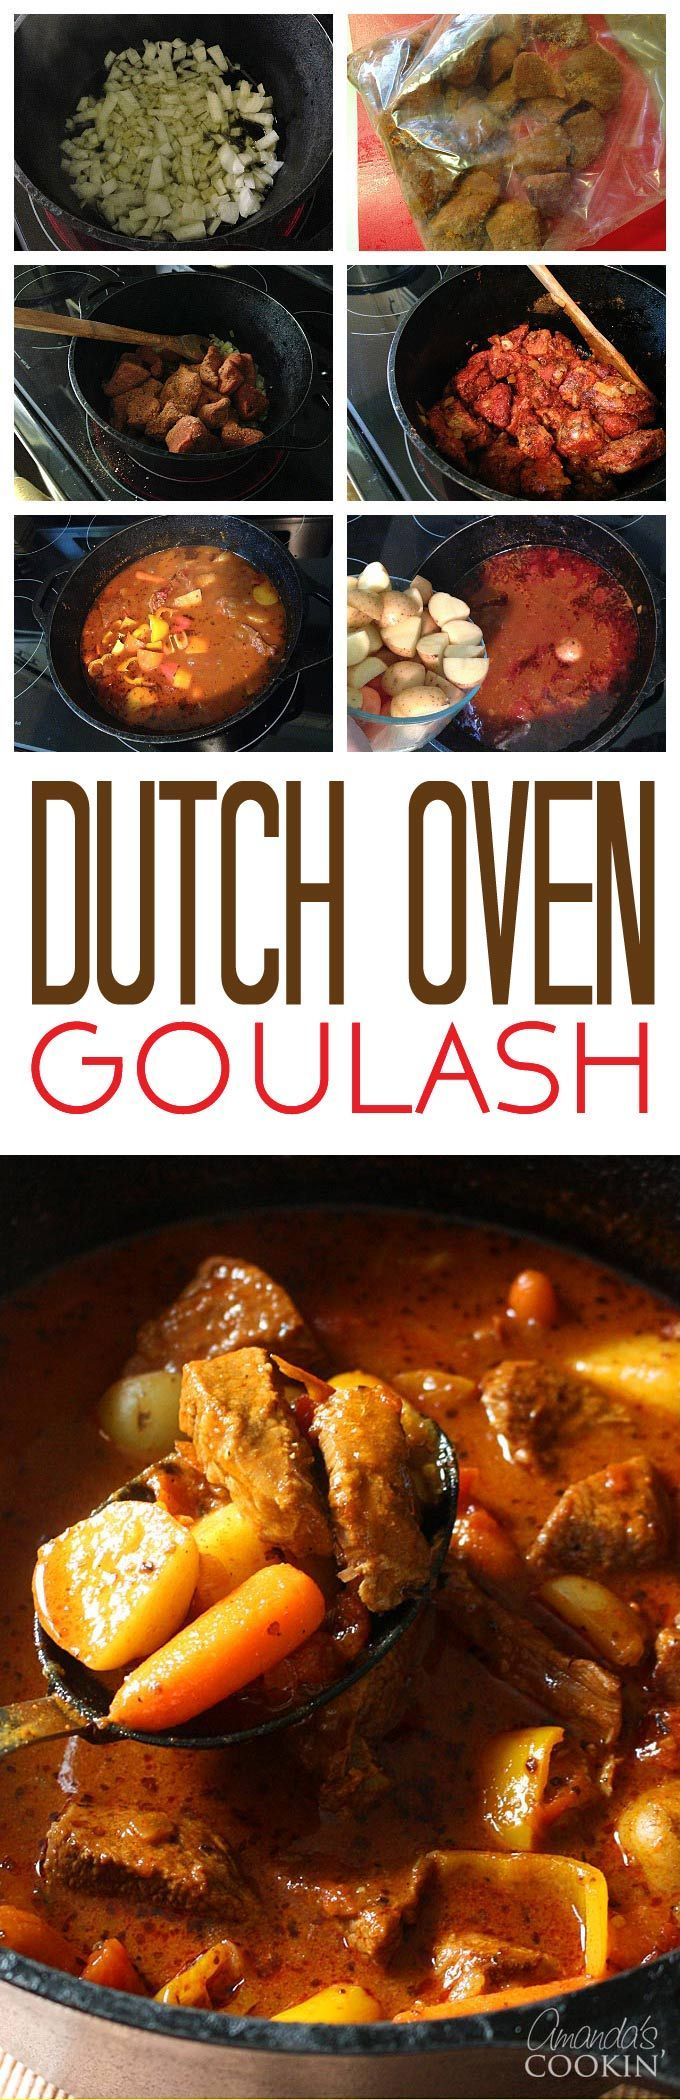 This dutch oven goulash is an easy, hearty recipe that is perfect for taking the chill out of the fall months!